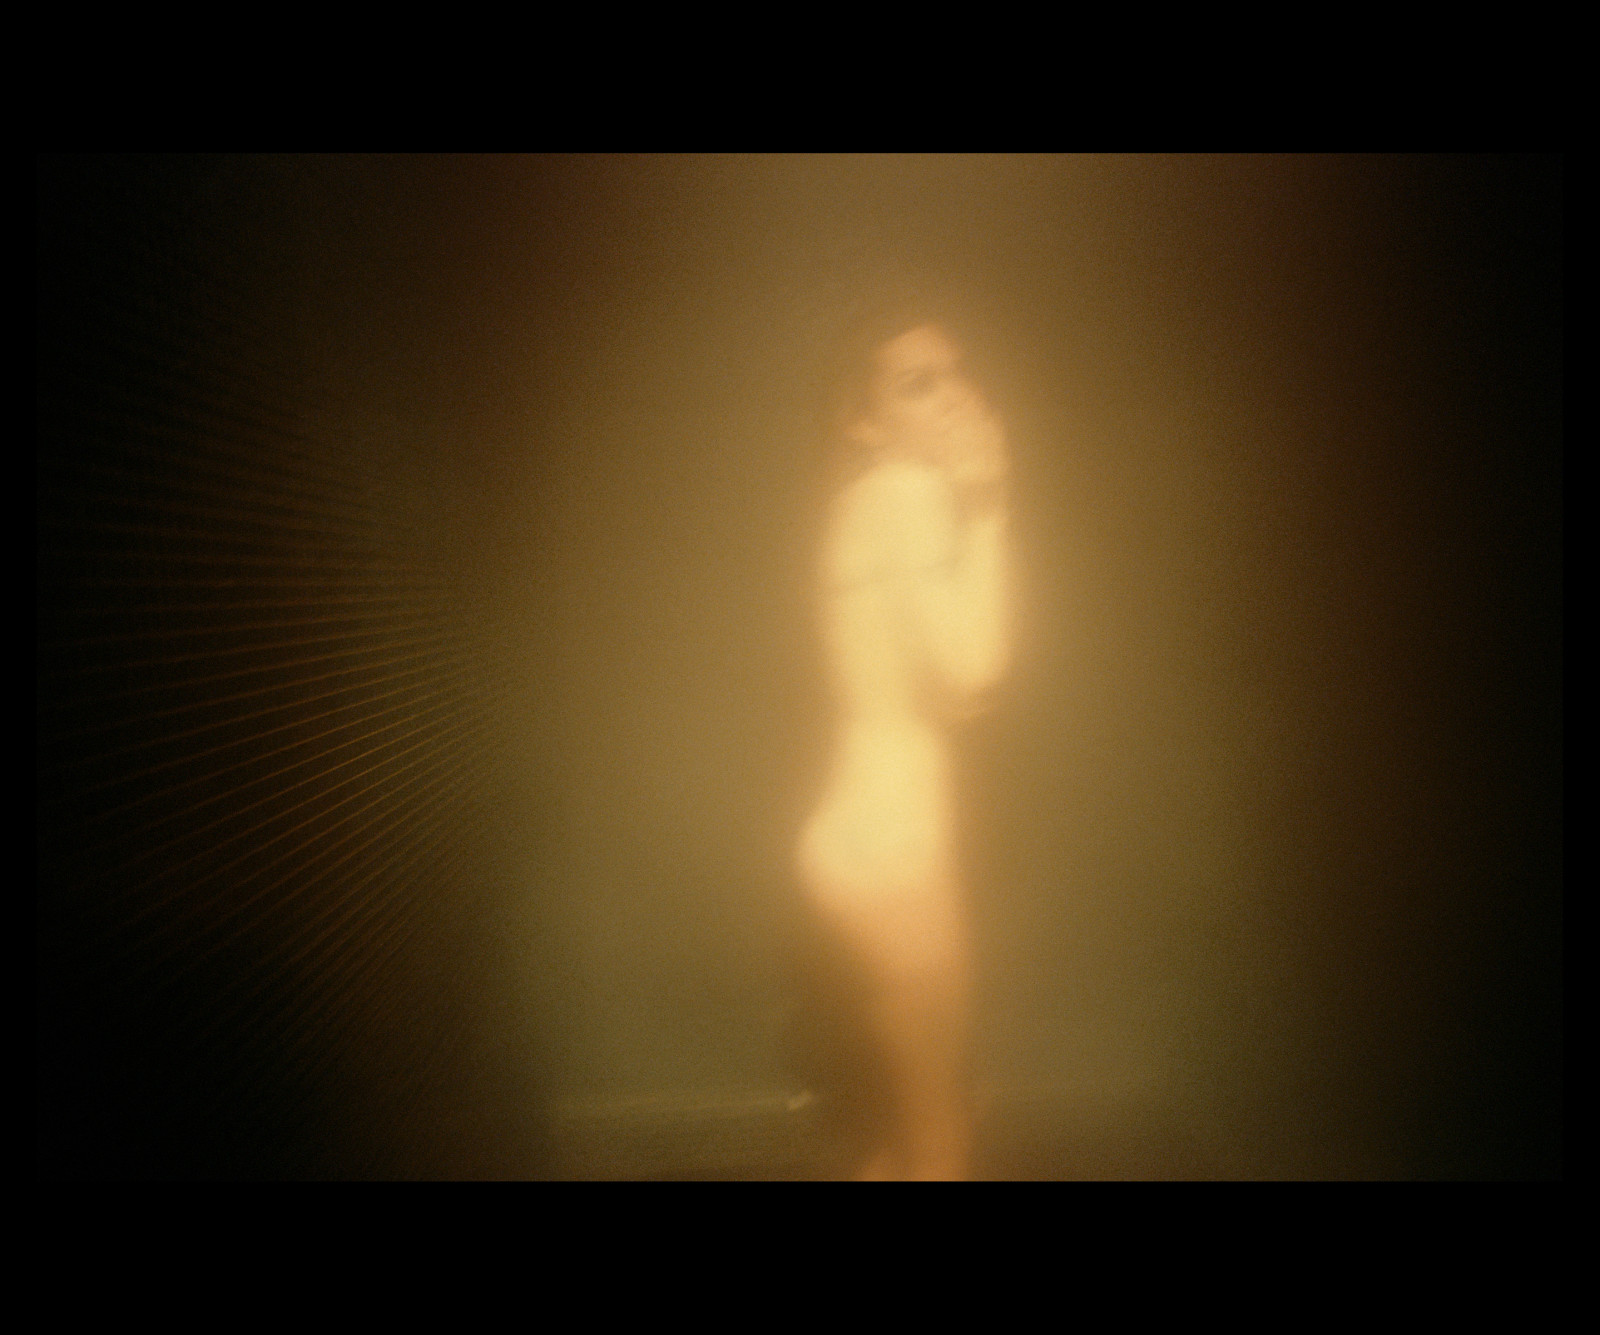 Nan Goldin: Sunny in the Sauna, L 'Hotel Paris, 2008